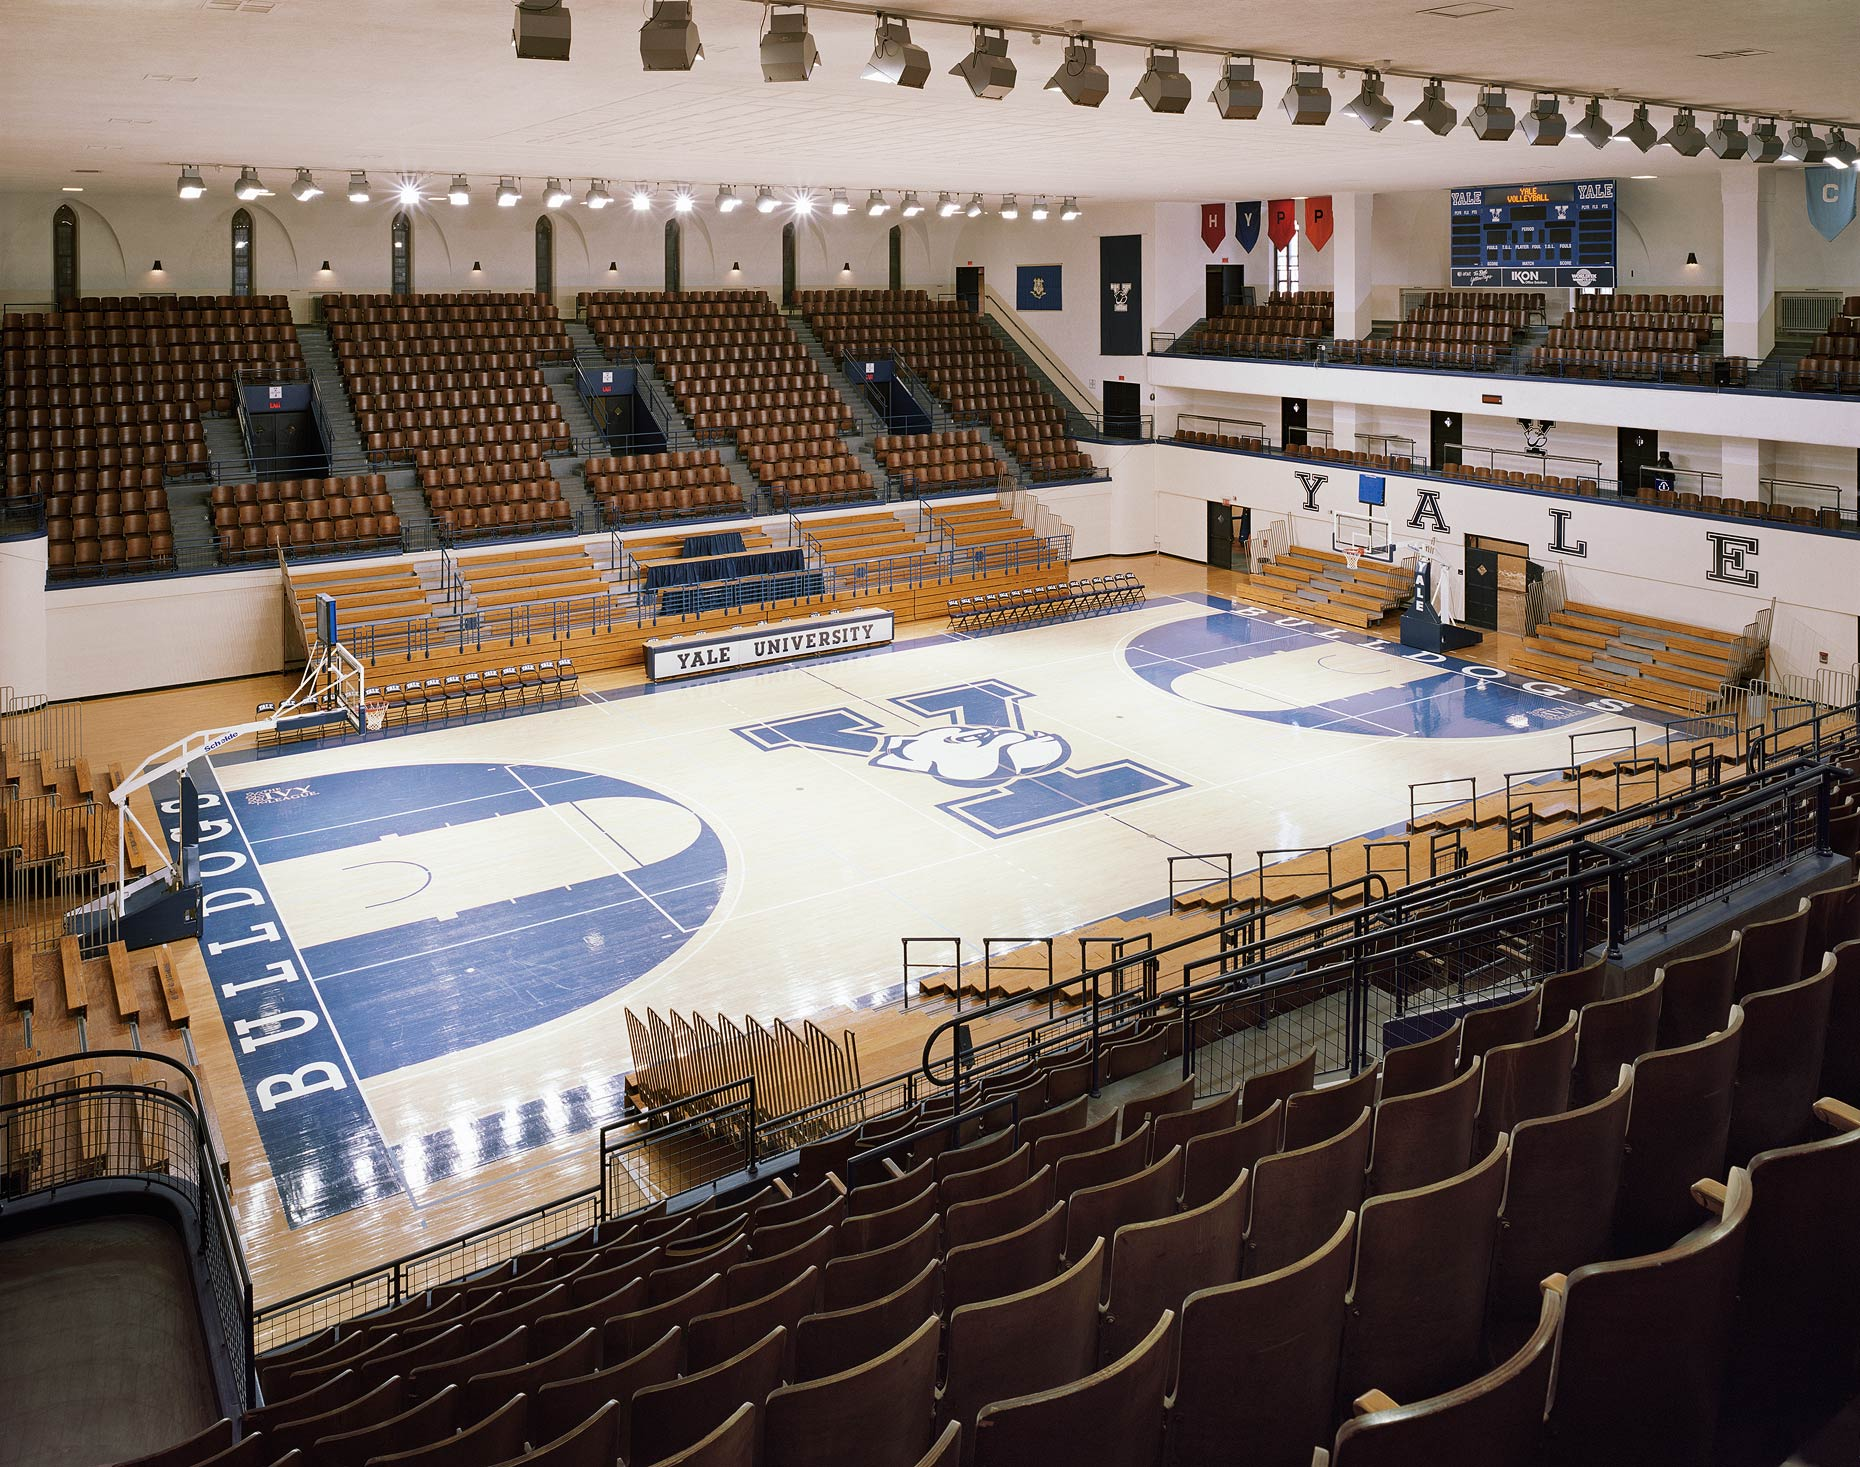 Payne Whitney Gym No. 1, John J. Lee Amphitheater, Yale University, New Haven, Connecticut, 2011